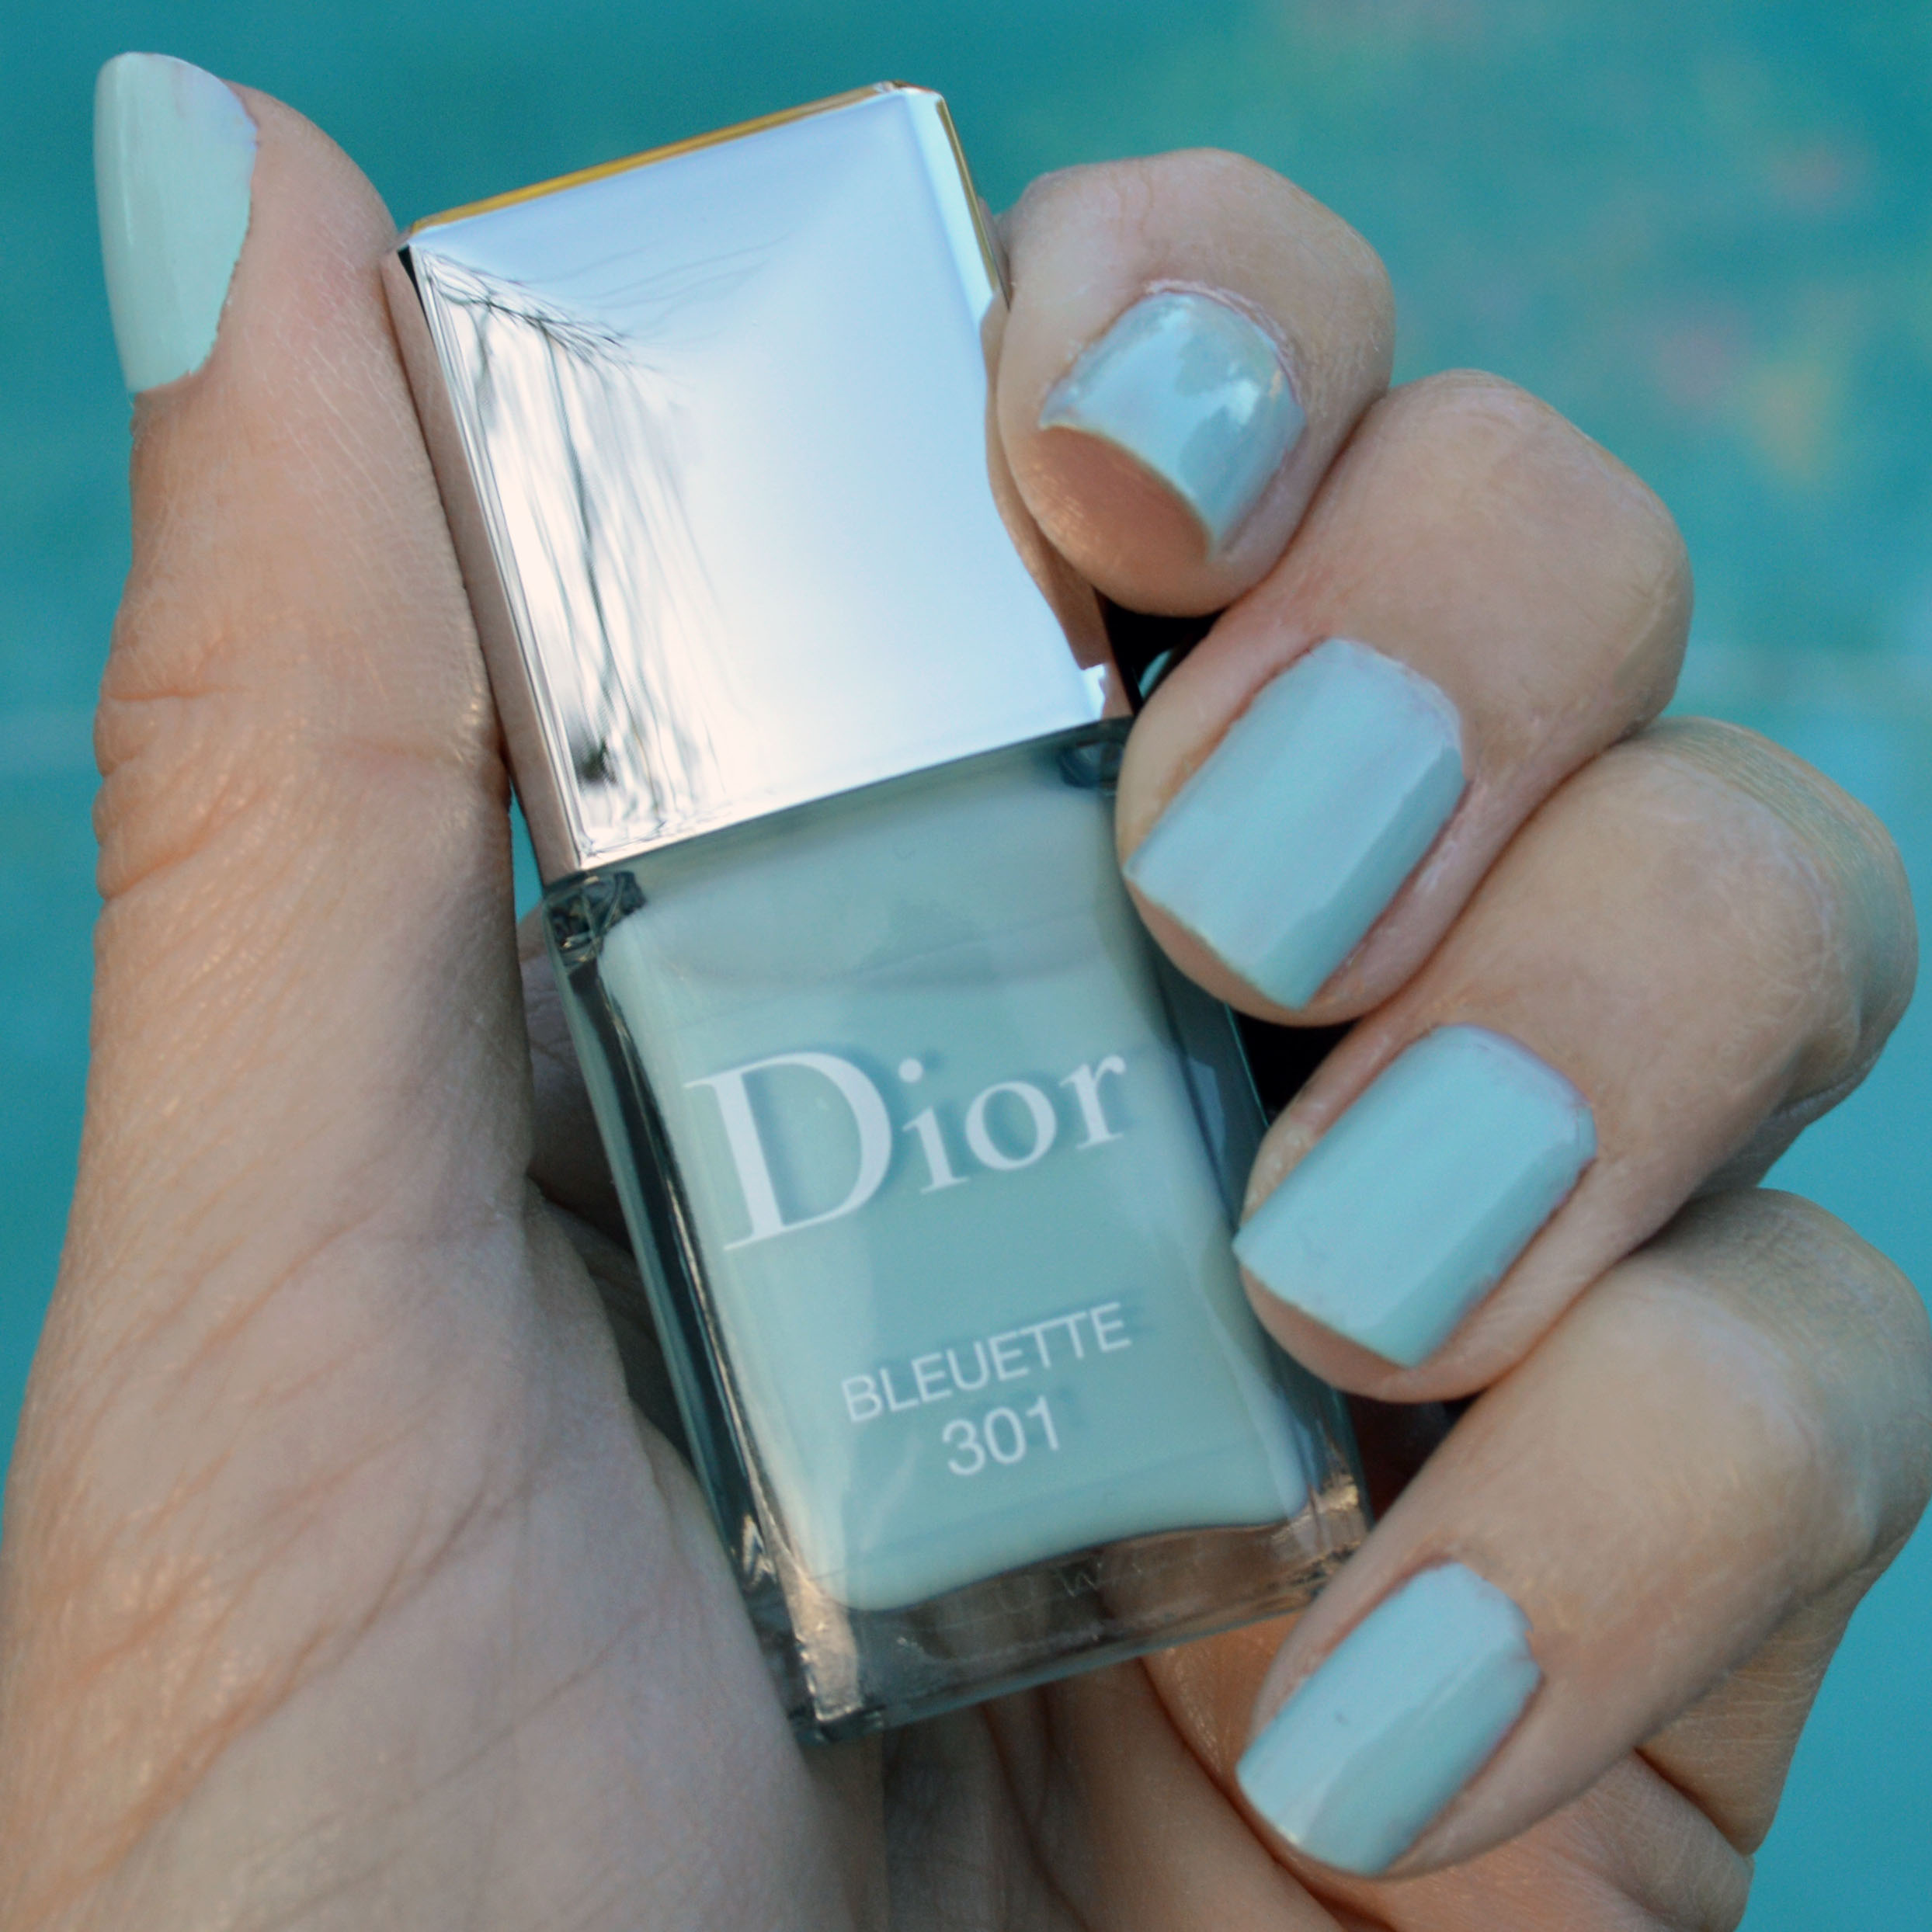 Dior Bleuette nail polish for spring 2016 review – Bay Area Fashionista